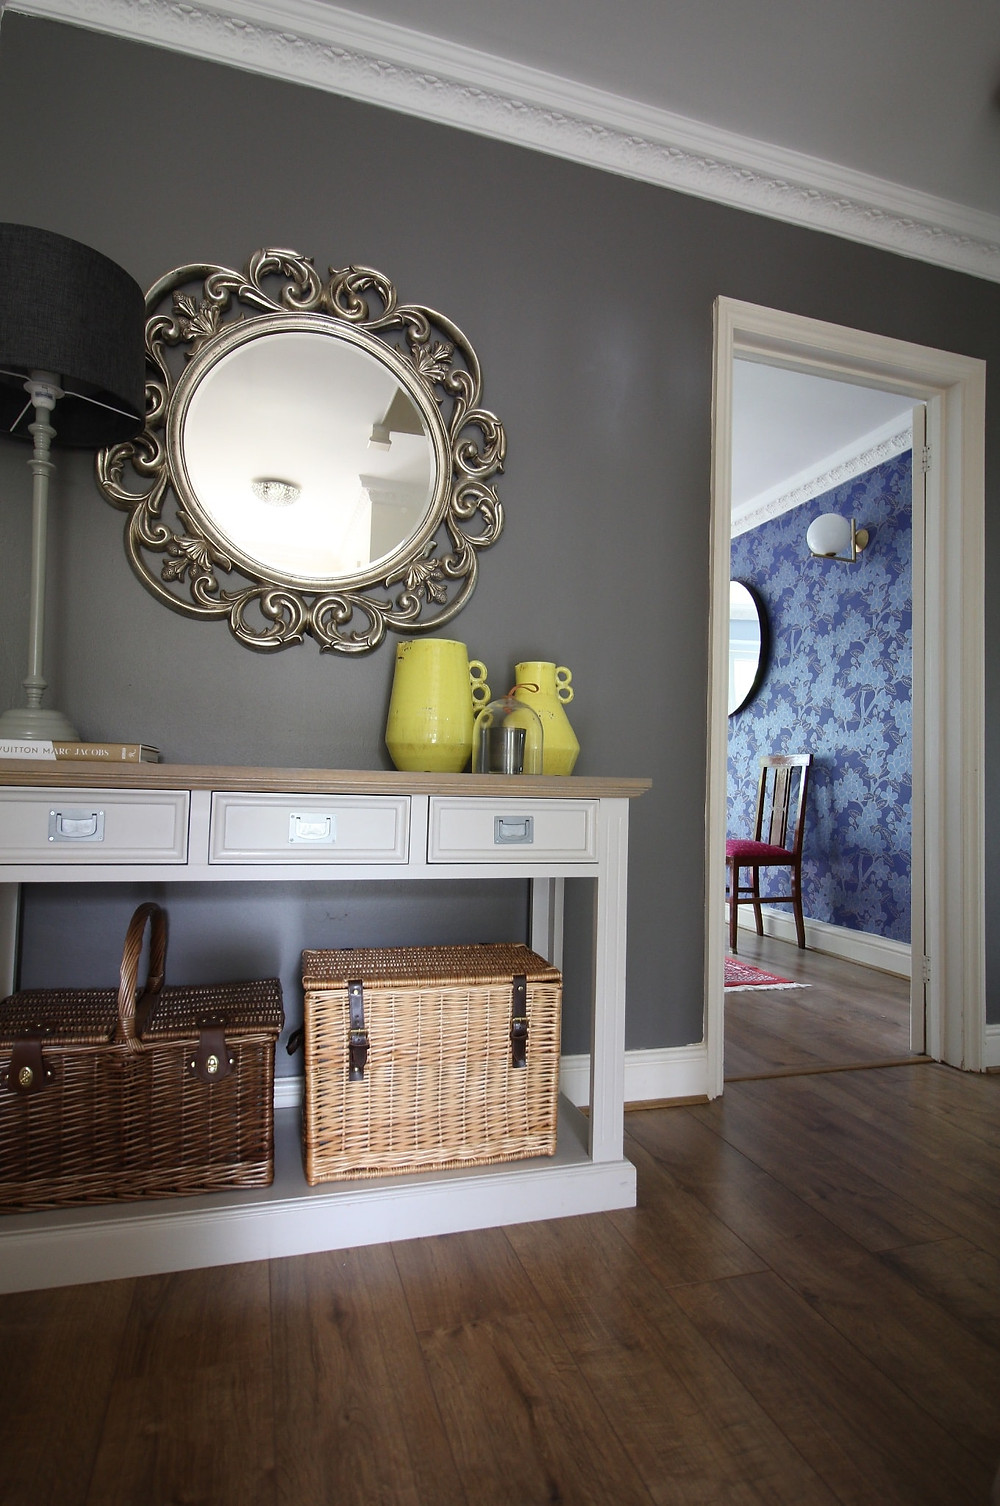 hallway in Farrow and ball Moles Breath and round silver mirror, picnic basket